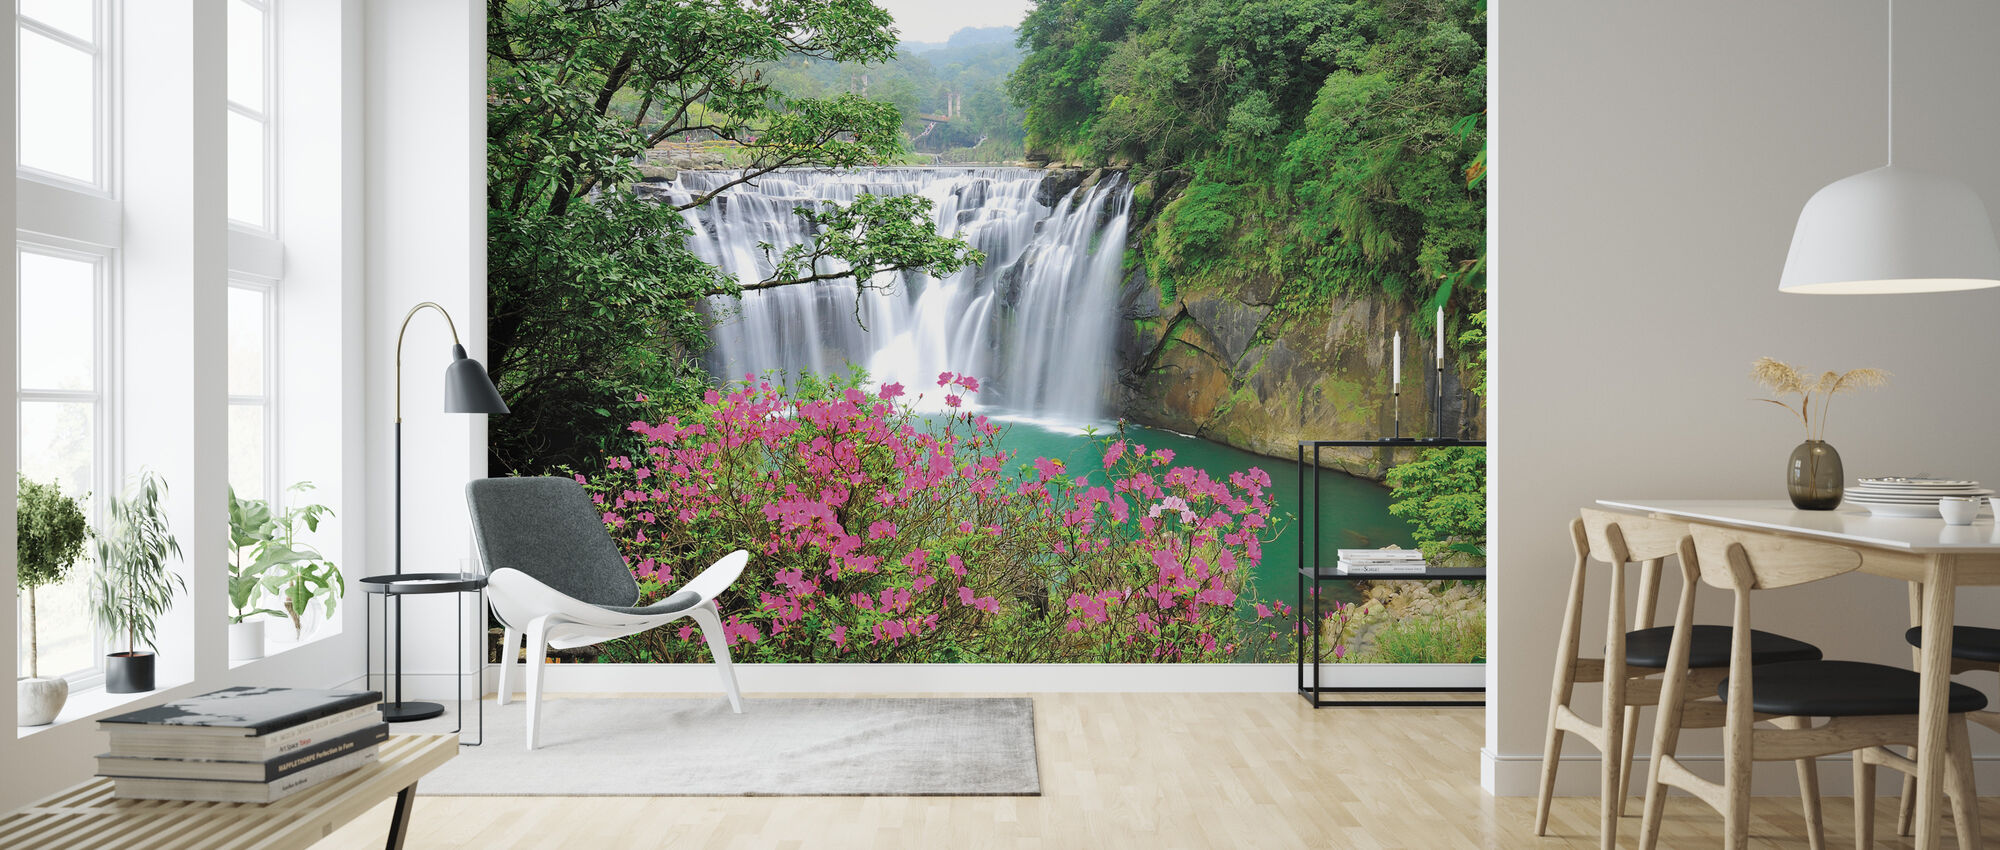 Shifen Waterfall - Wallpaper - Living Room